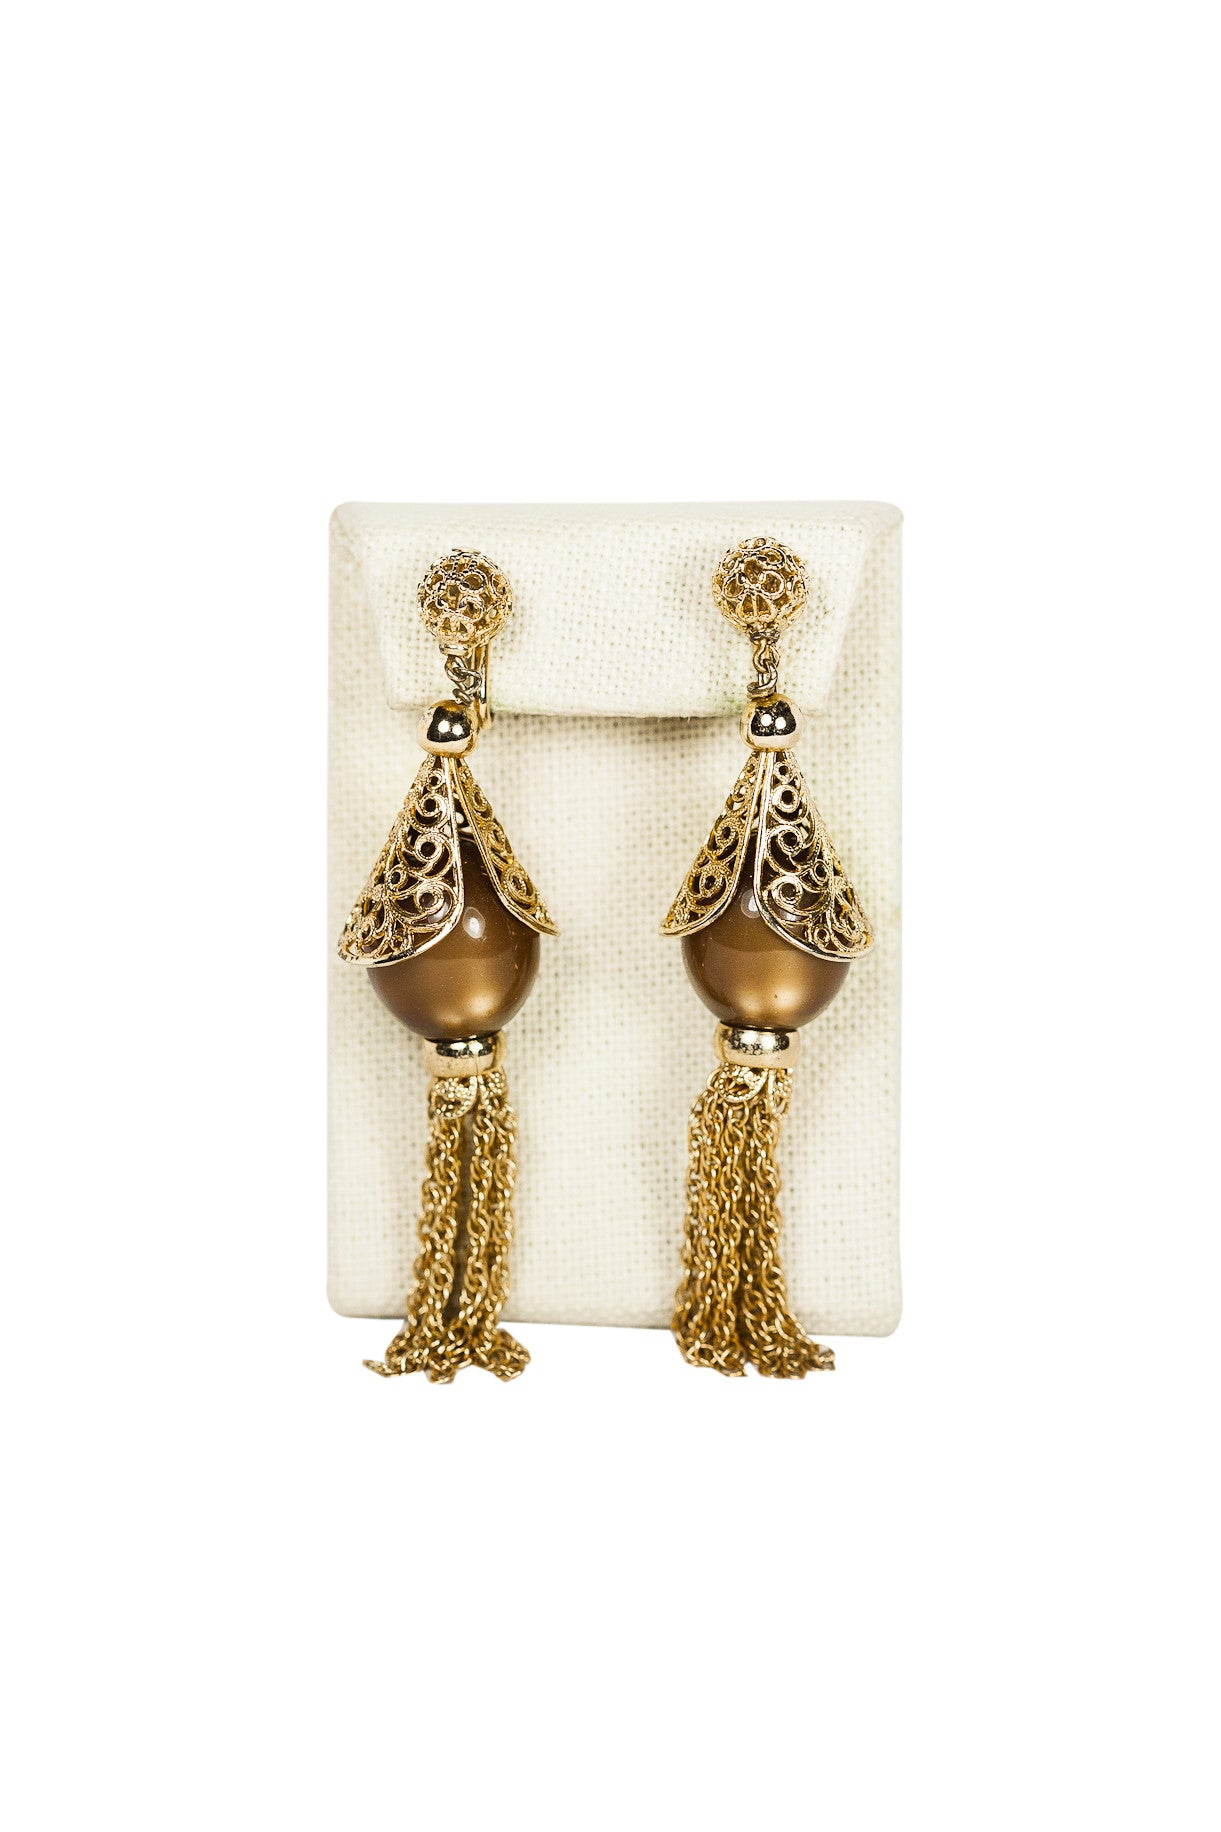 60's__Napier__Tassel Statement Clips